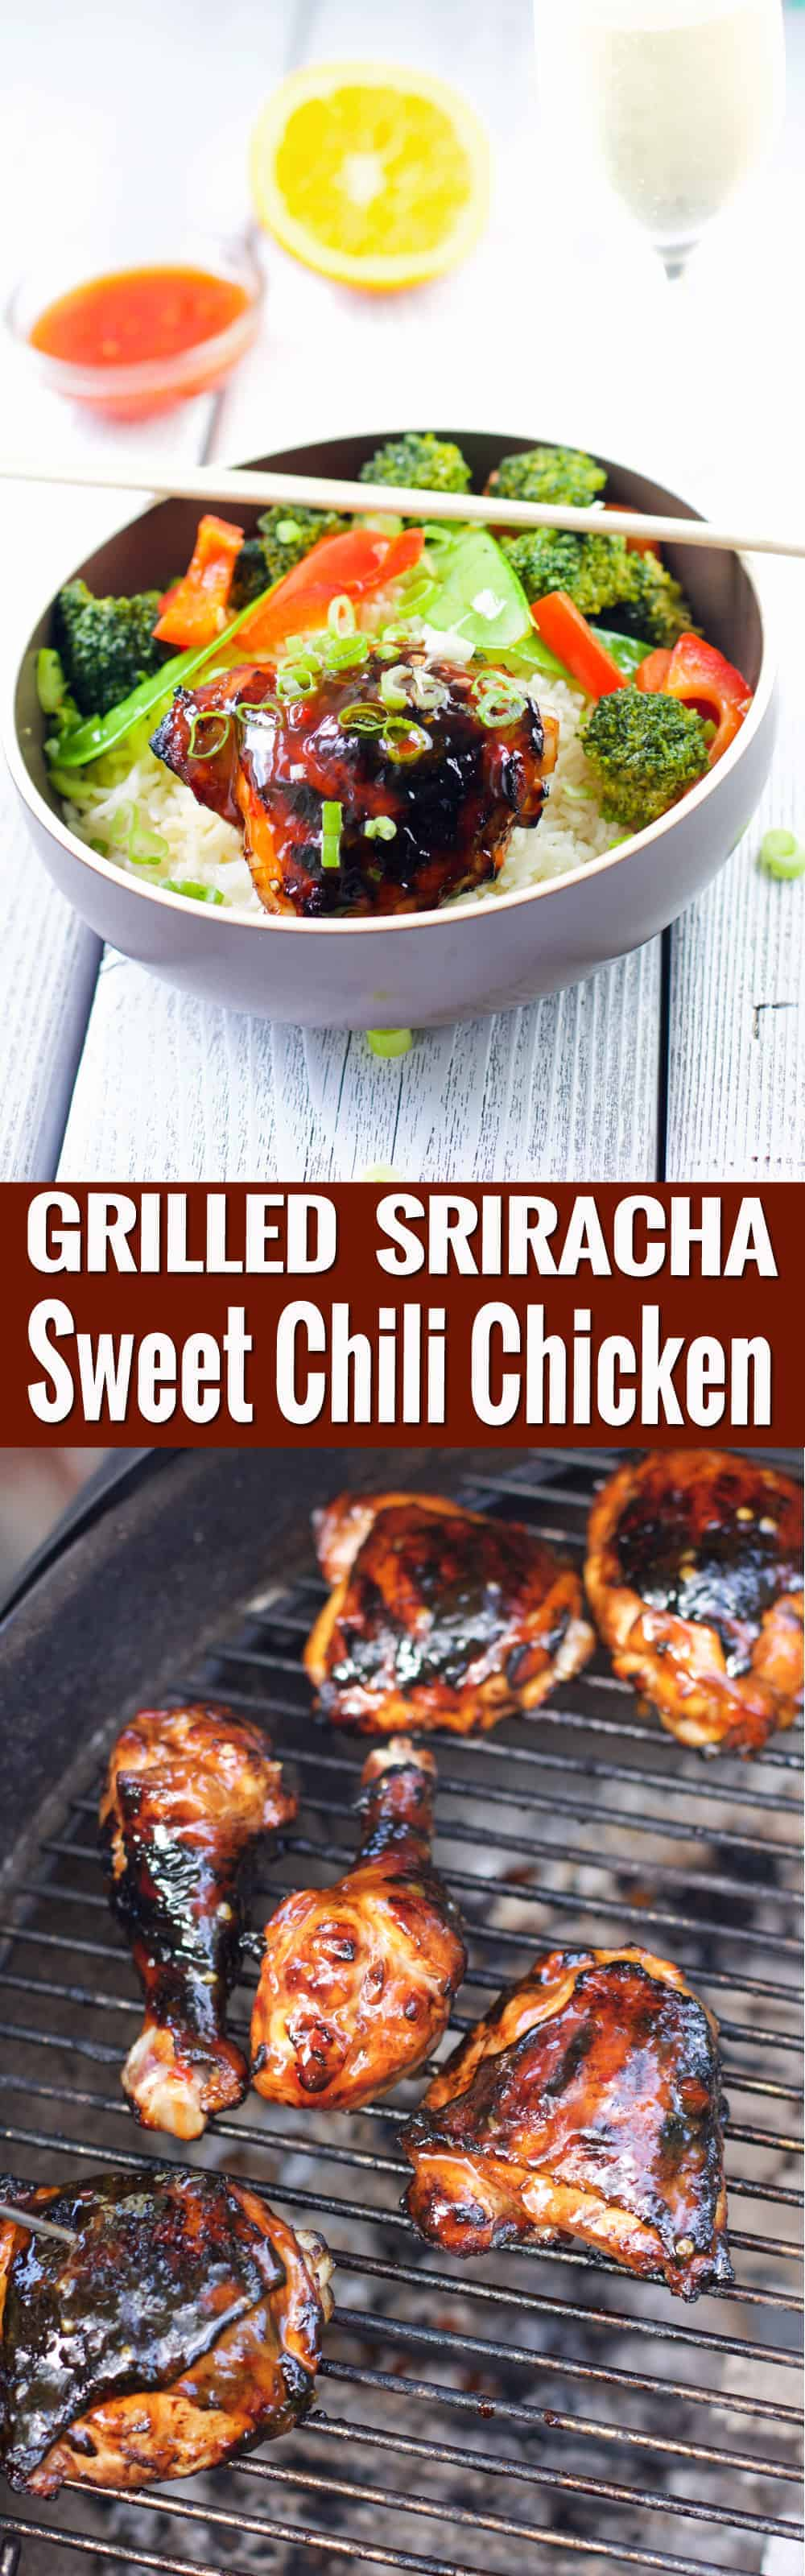 Grilled Sriracha Sweet Chili Chicken. An awesome grilled chicken dish that balances savory, sweet, and spicy flavors. So vibrant and tasty! | vindulgeblog.com